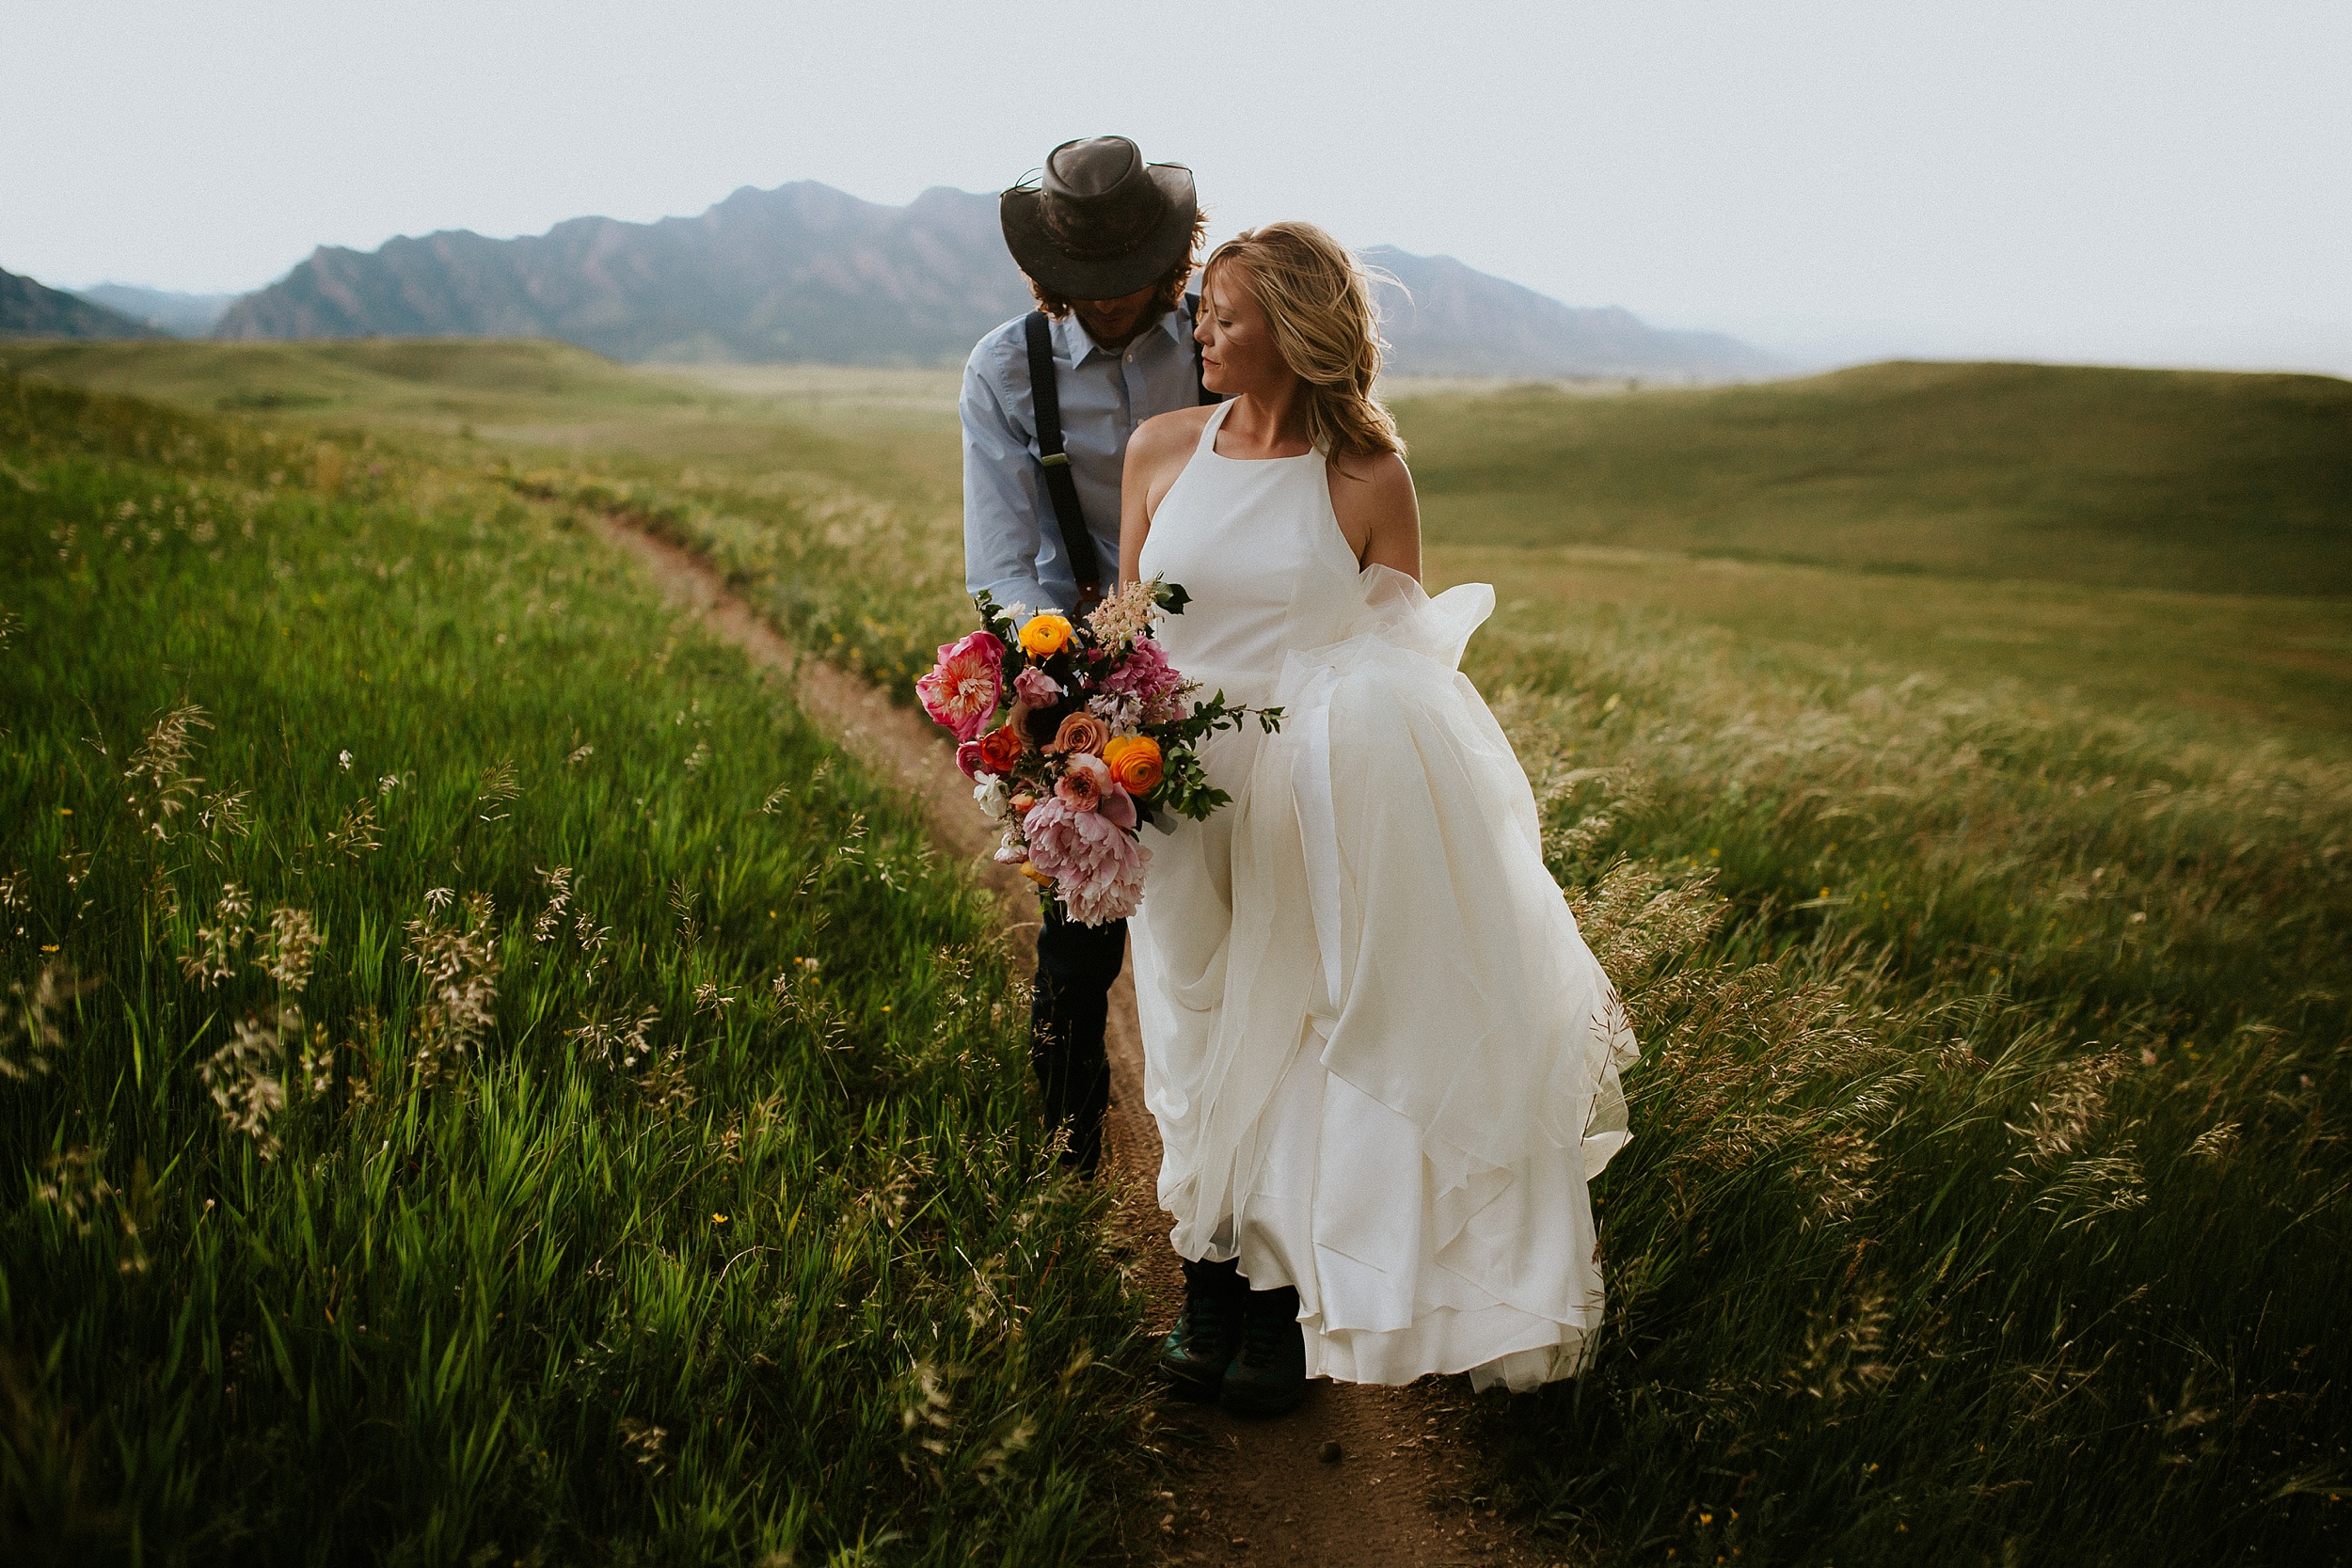 Boulder_Colorado_Elopement_Fringe_Boho_Mountains-29.jpg